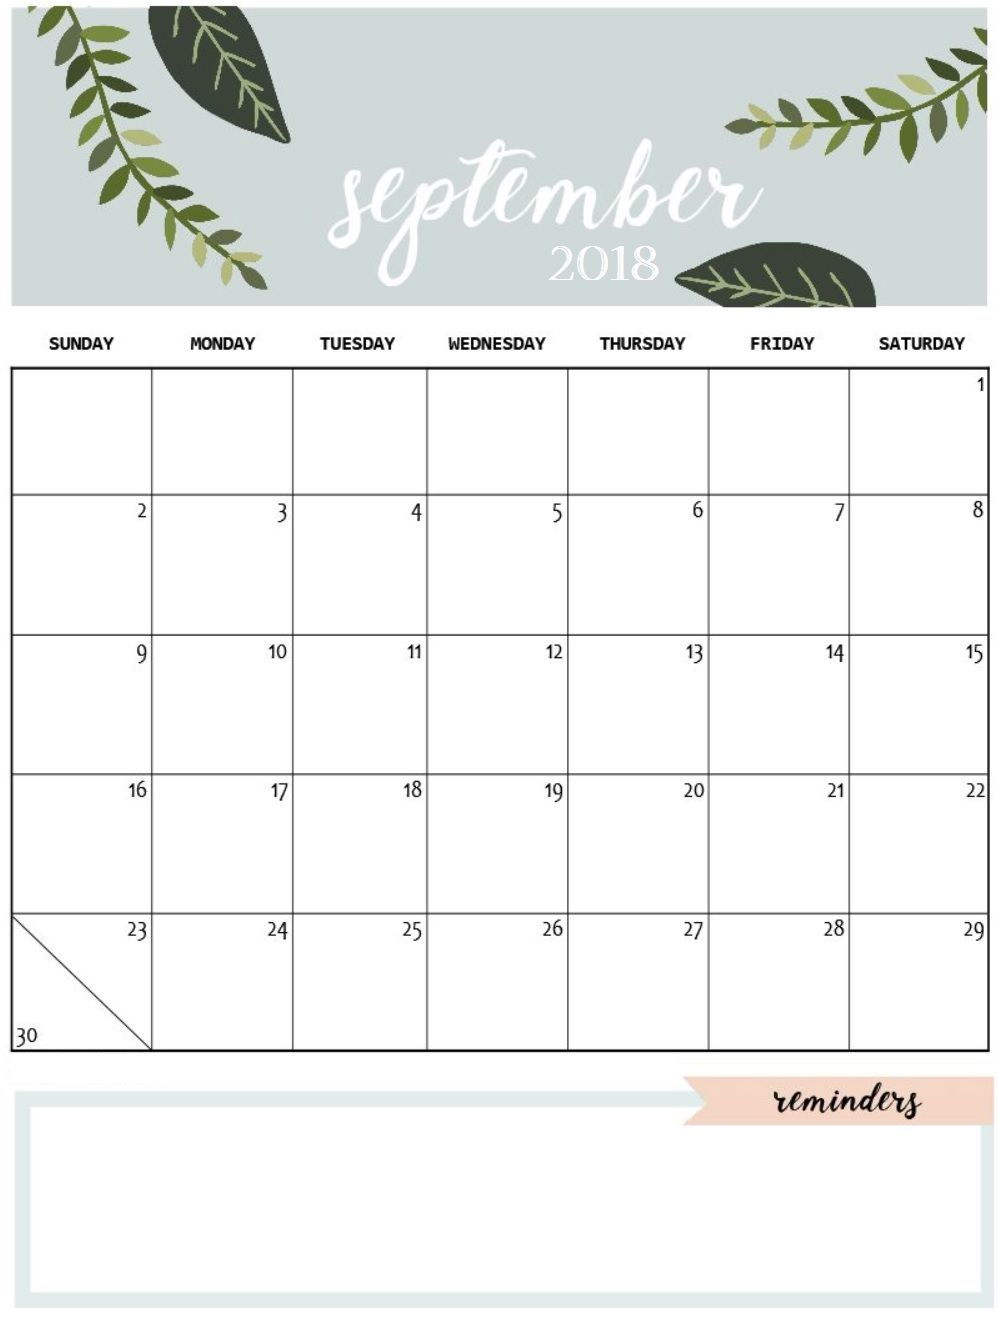 photo relating to Cute Calendars titled September 2018 Adorable Calendar Most recent Calendar September